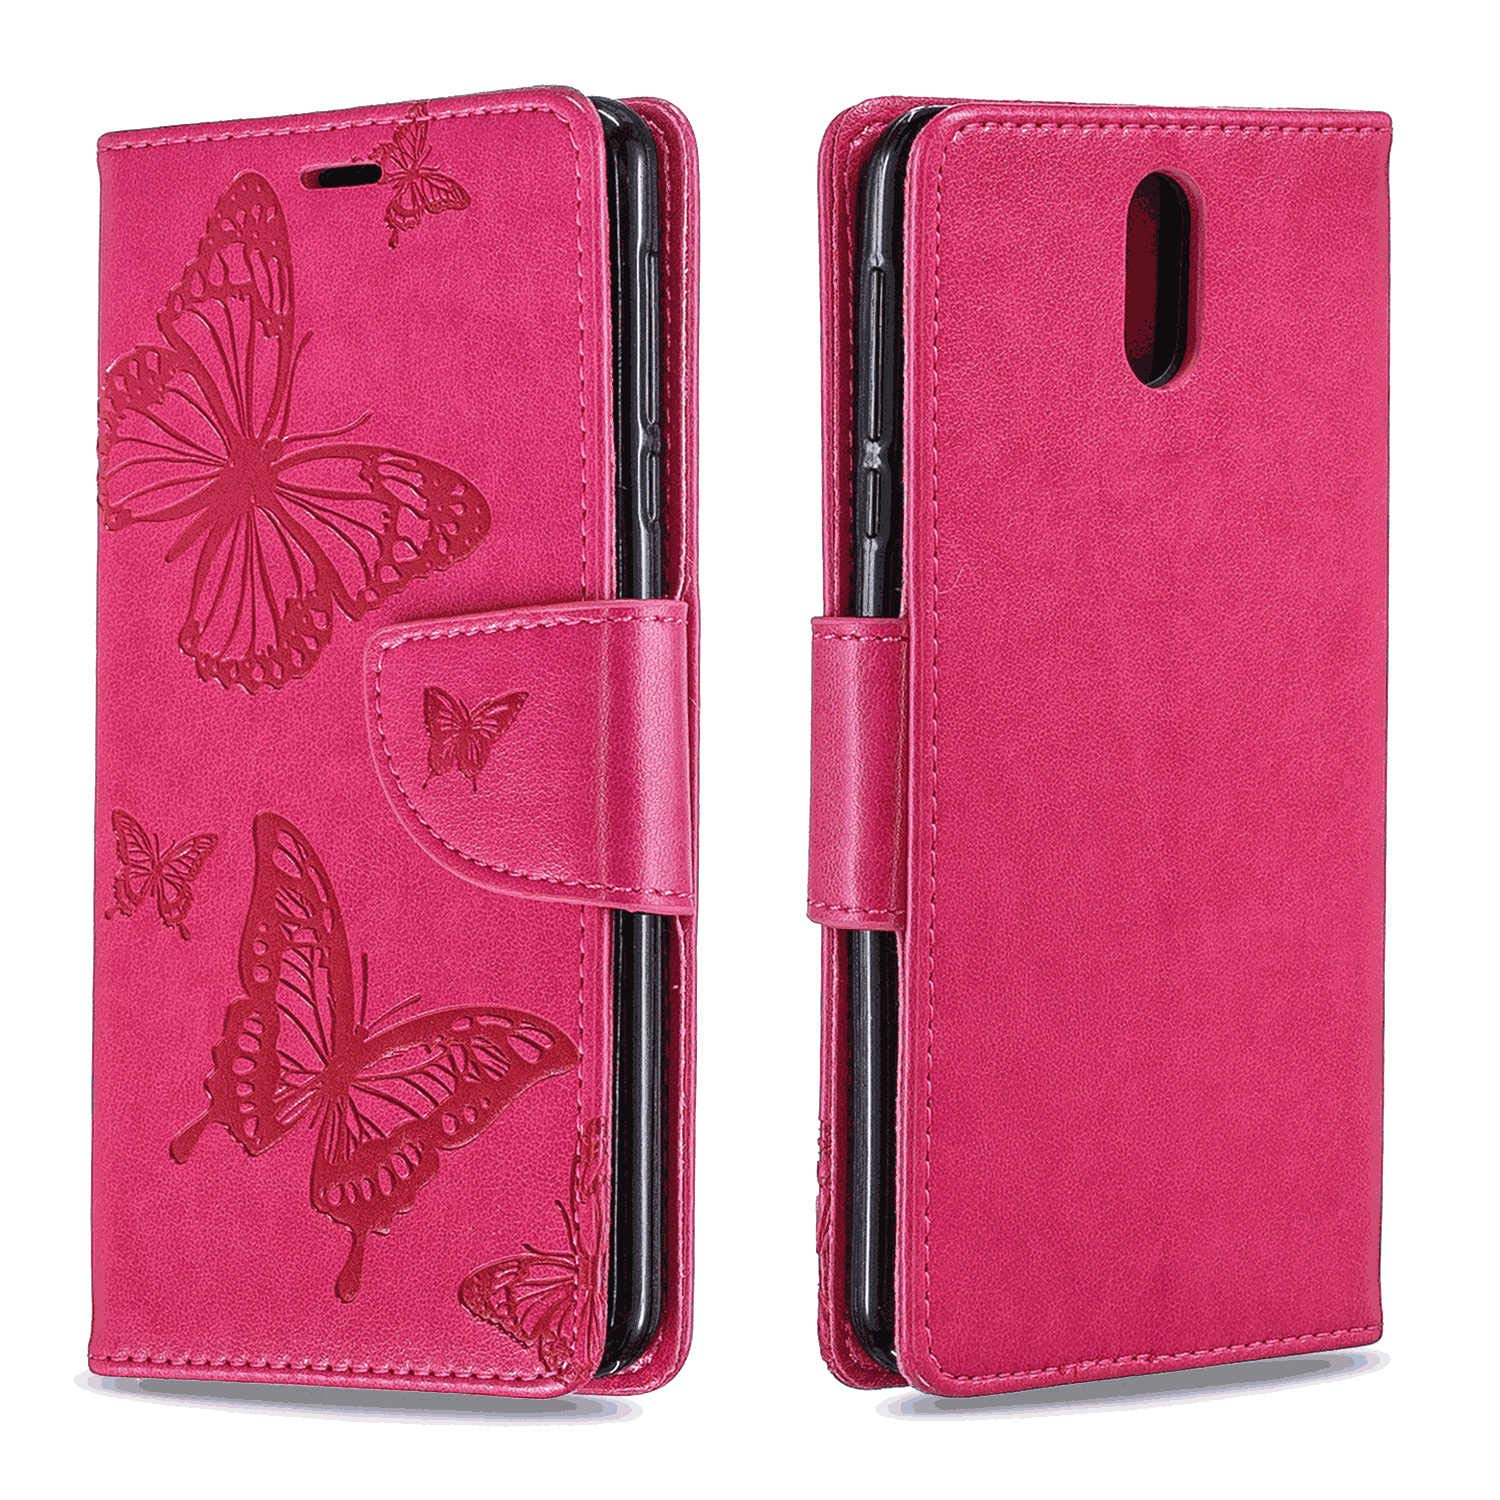 iPhone Xs Flip Case Cover for iPhone Xs Leather Mobile Phone case Kickstand Extra-Protective Business Card Holders with Free Waterproof-Bag Delicate